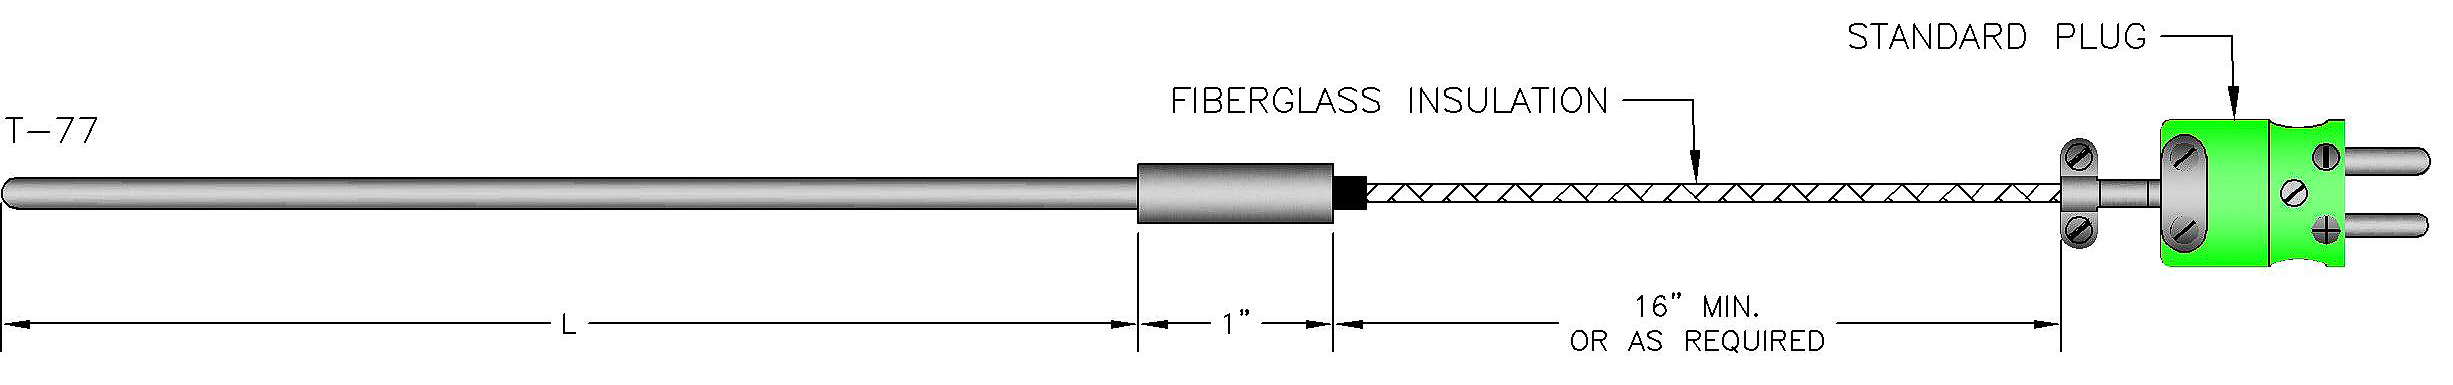 Metal Sheathed Cable Type Mi : High temperature thermocouple calibration types c b r s